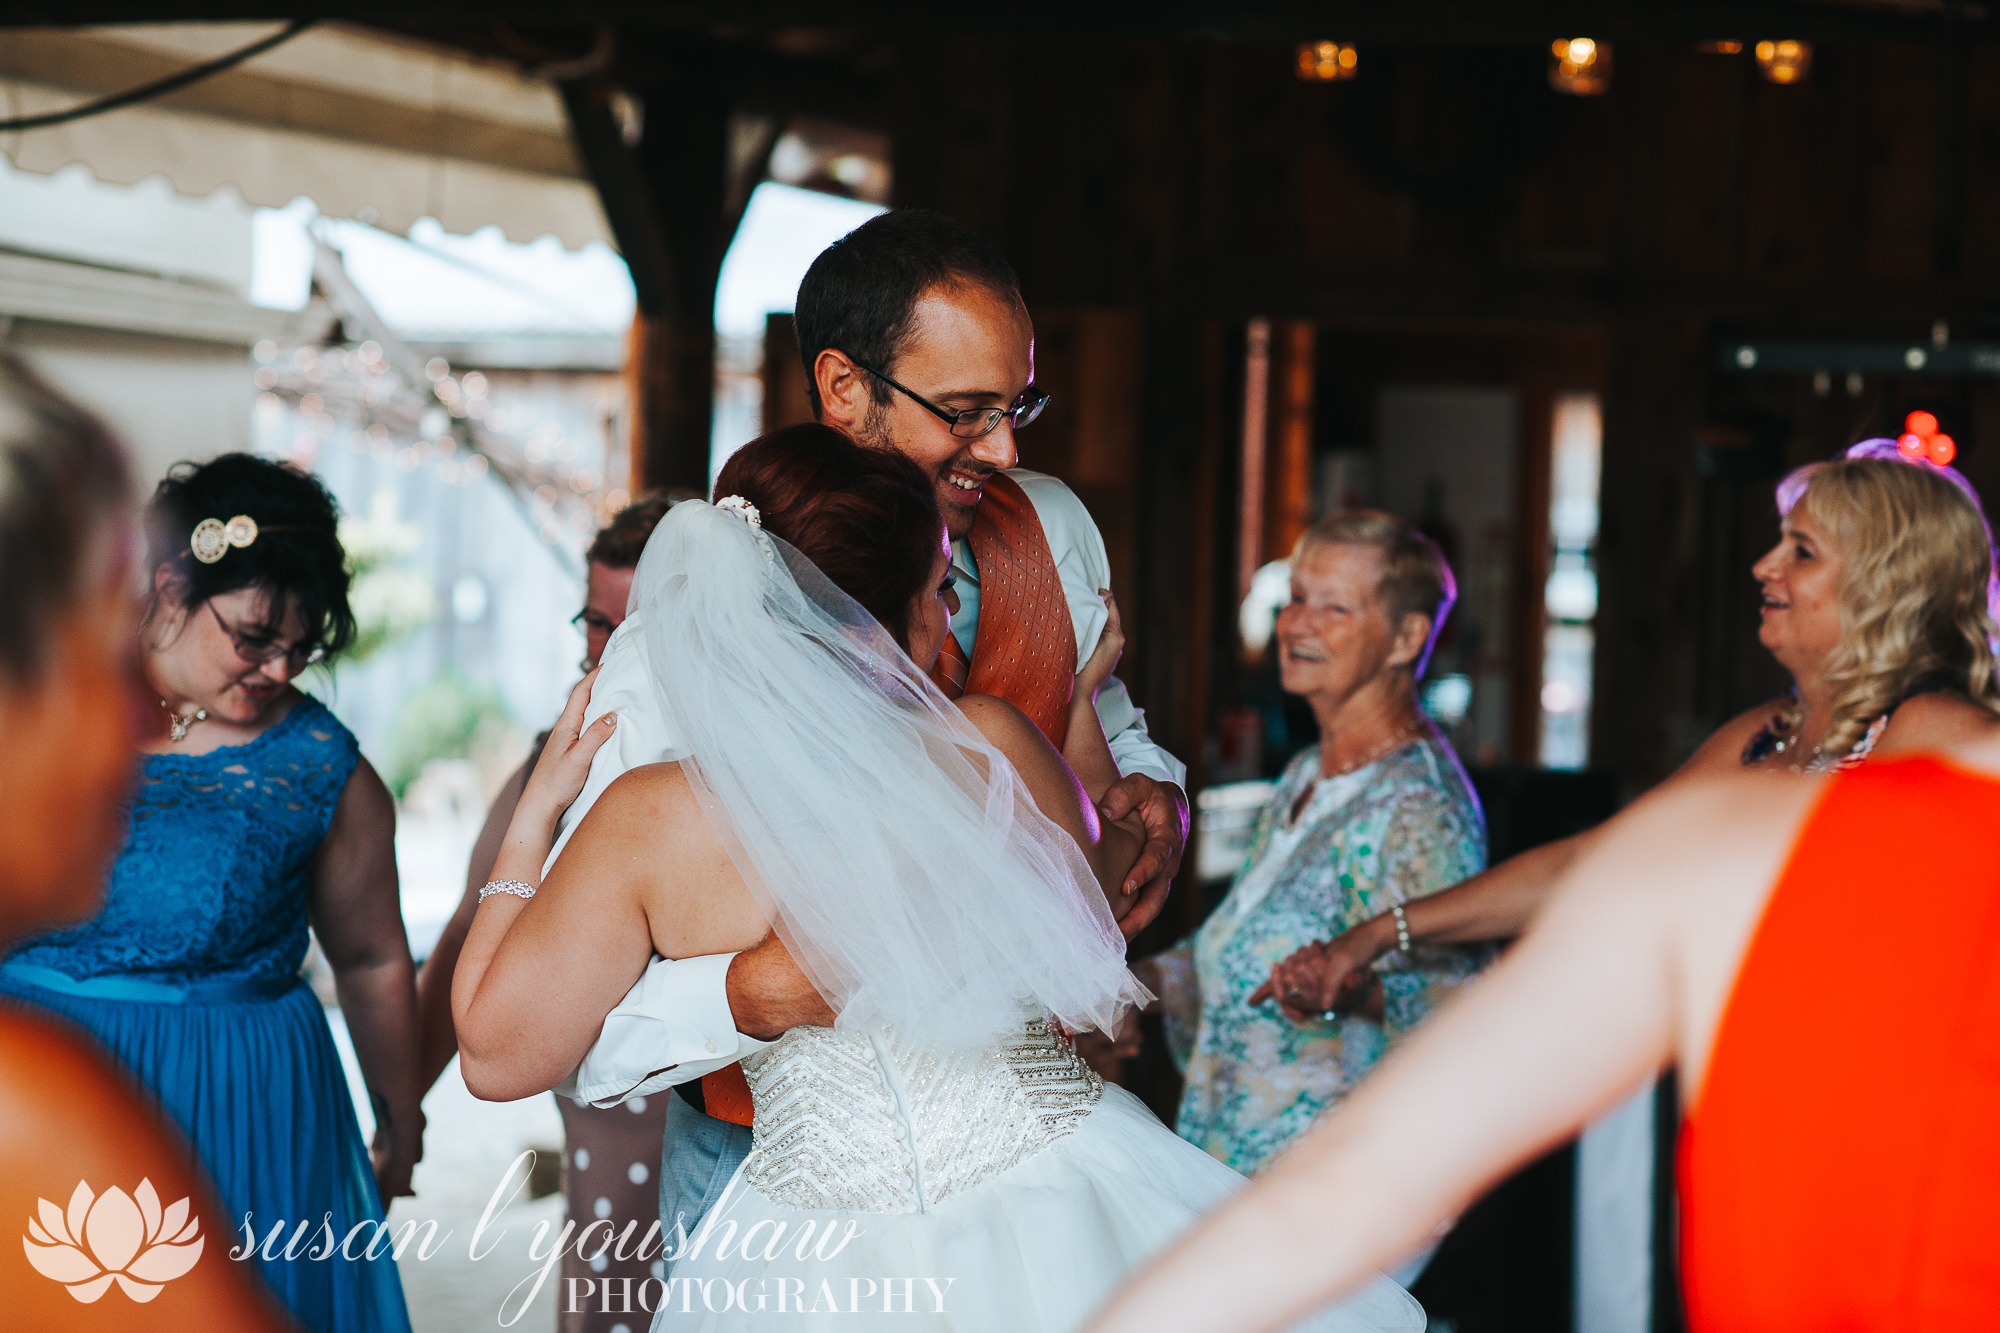 BLOG Kelly and DJ Roberts 08-25-2018 SLY Photography LLC-174.jpg